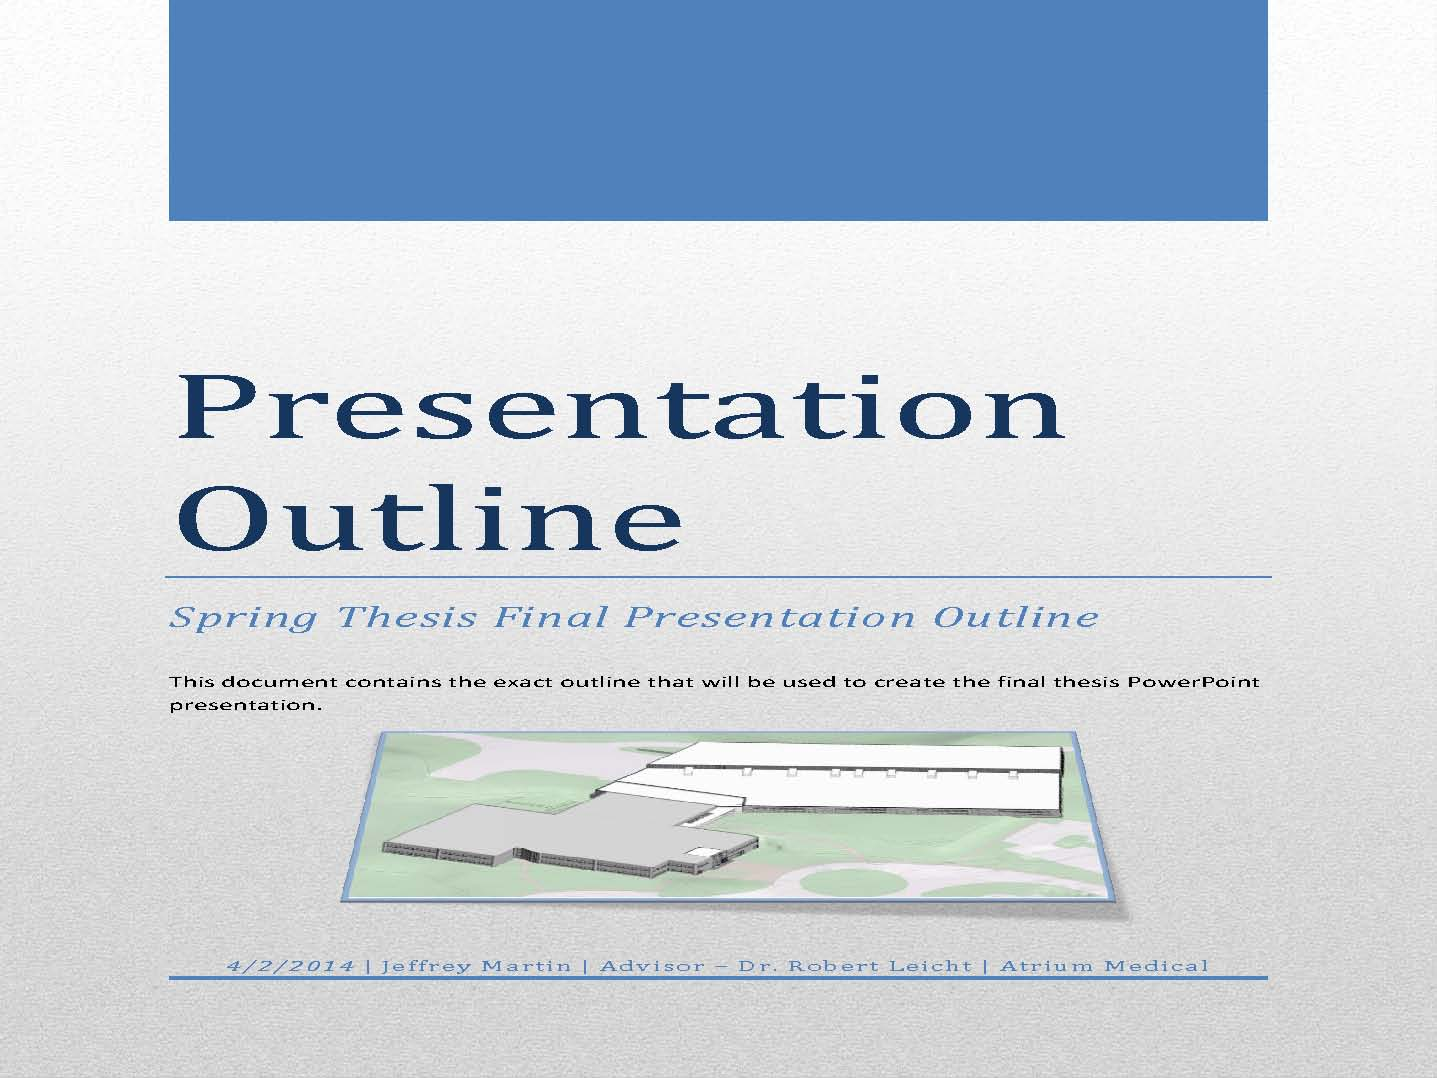 presenting a thesis on powerpoint Now let's get into the writing process that leads to a professional powerpoint presentation 1 research for your presentation step 1 develop your powerpoint presentation's 'thesis' right now, before you get any further in the process, write out what your topic is in one sentence think of it as a mini-thesis for your presentation.